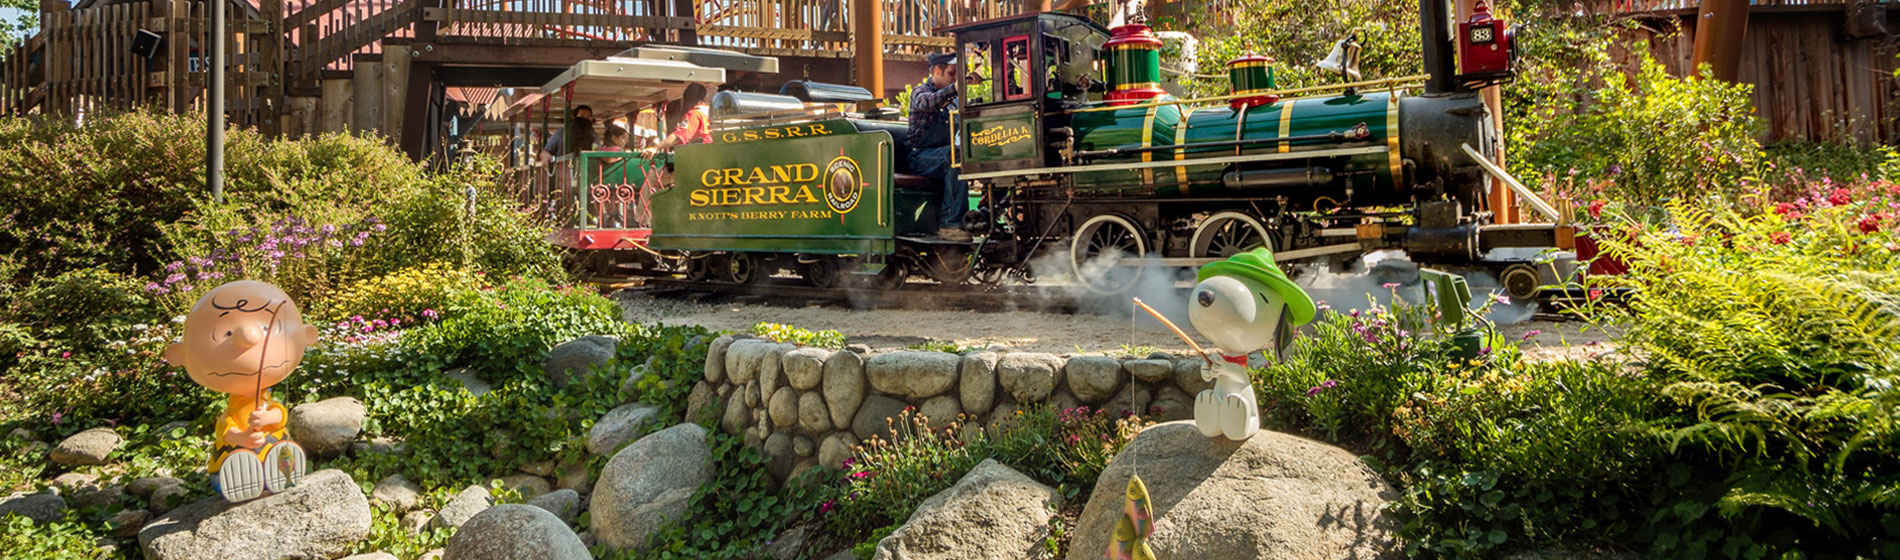 Kiddie Rides, Activities & Attractions at Knott's Berry Farm